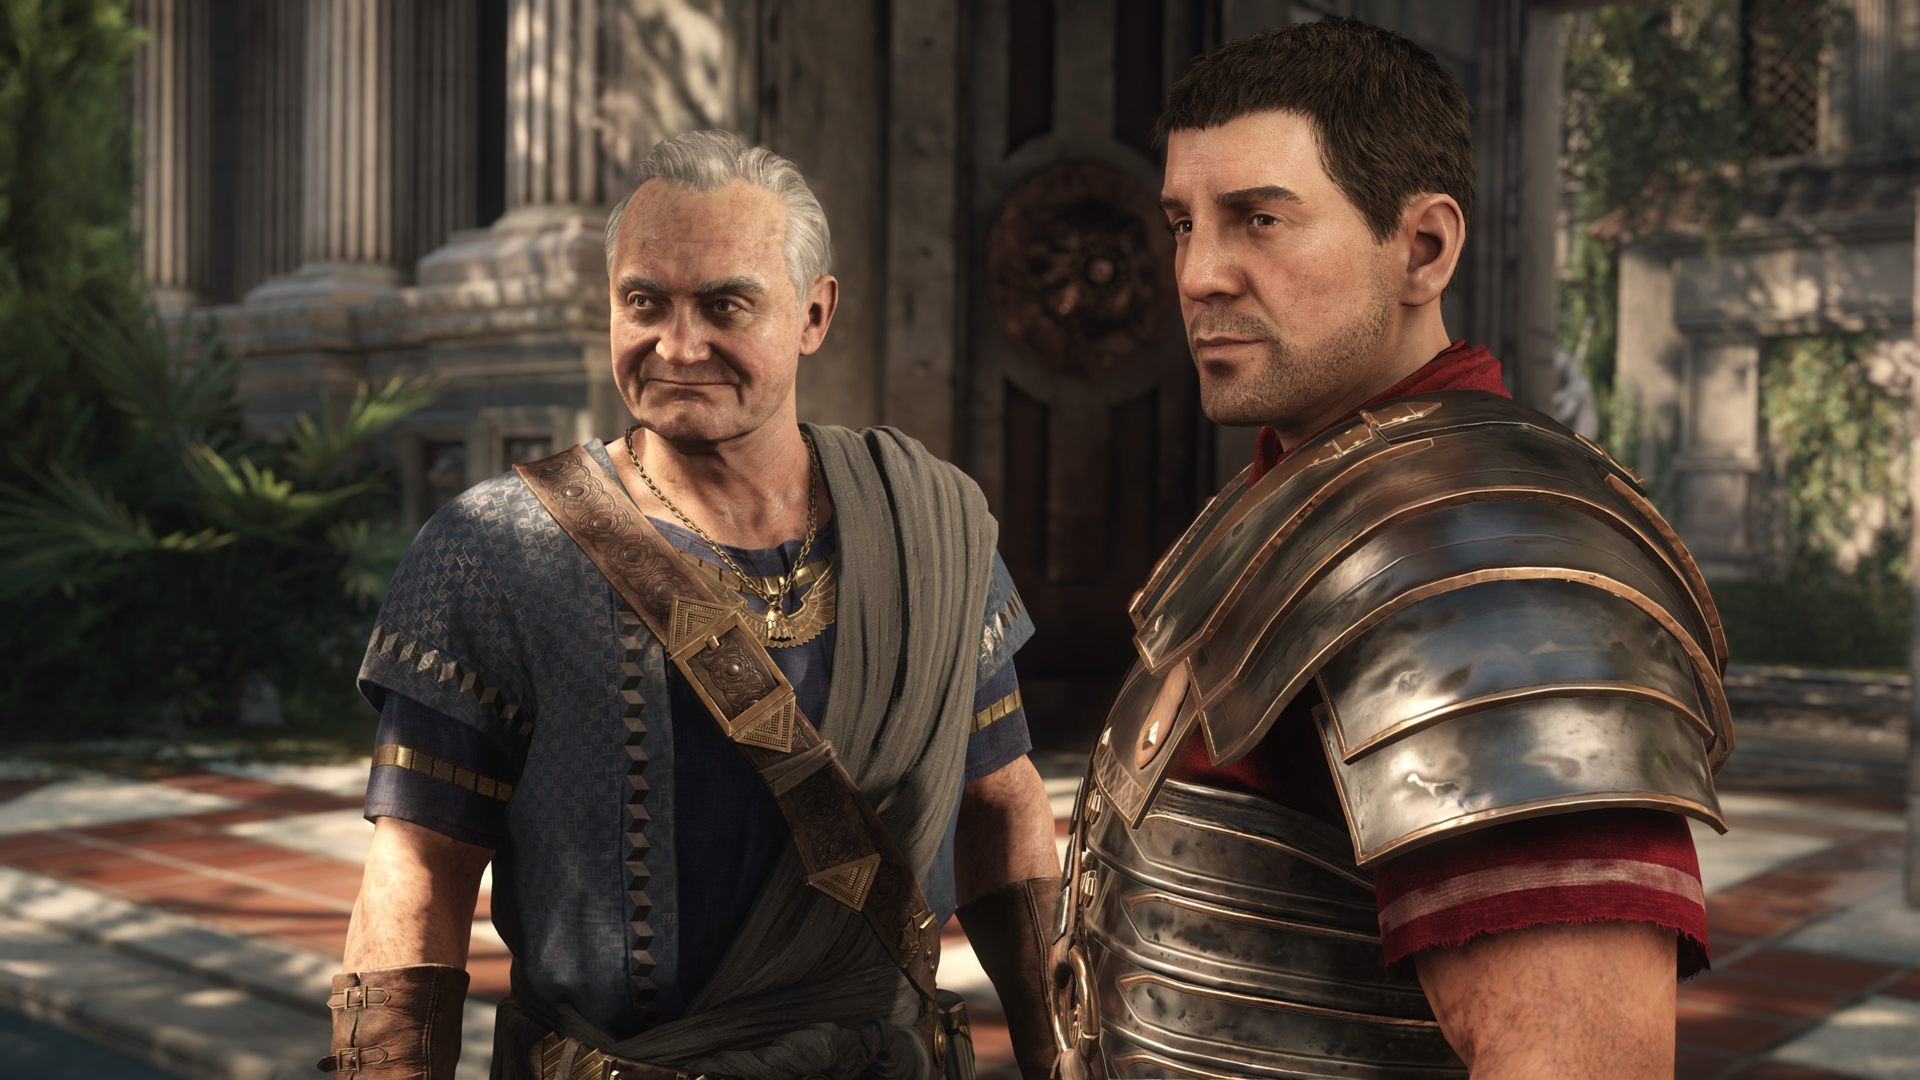 Probamos Ryse: Son of Rome para PC